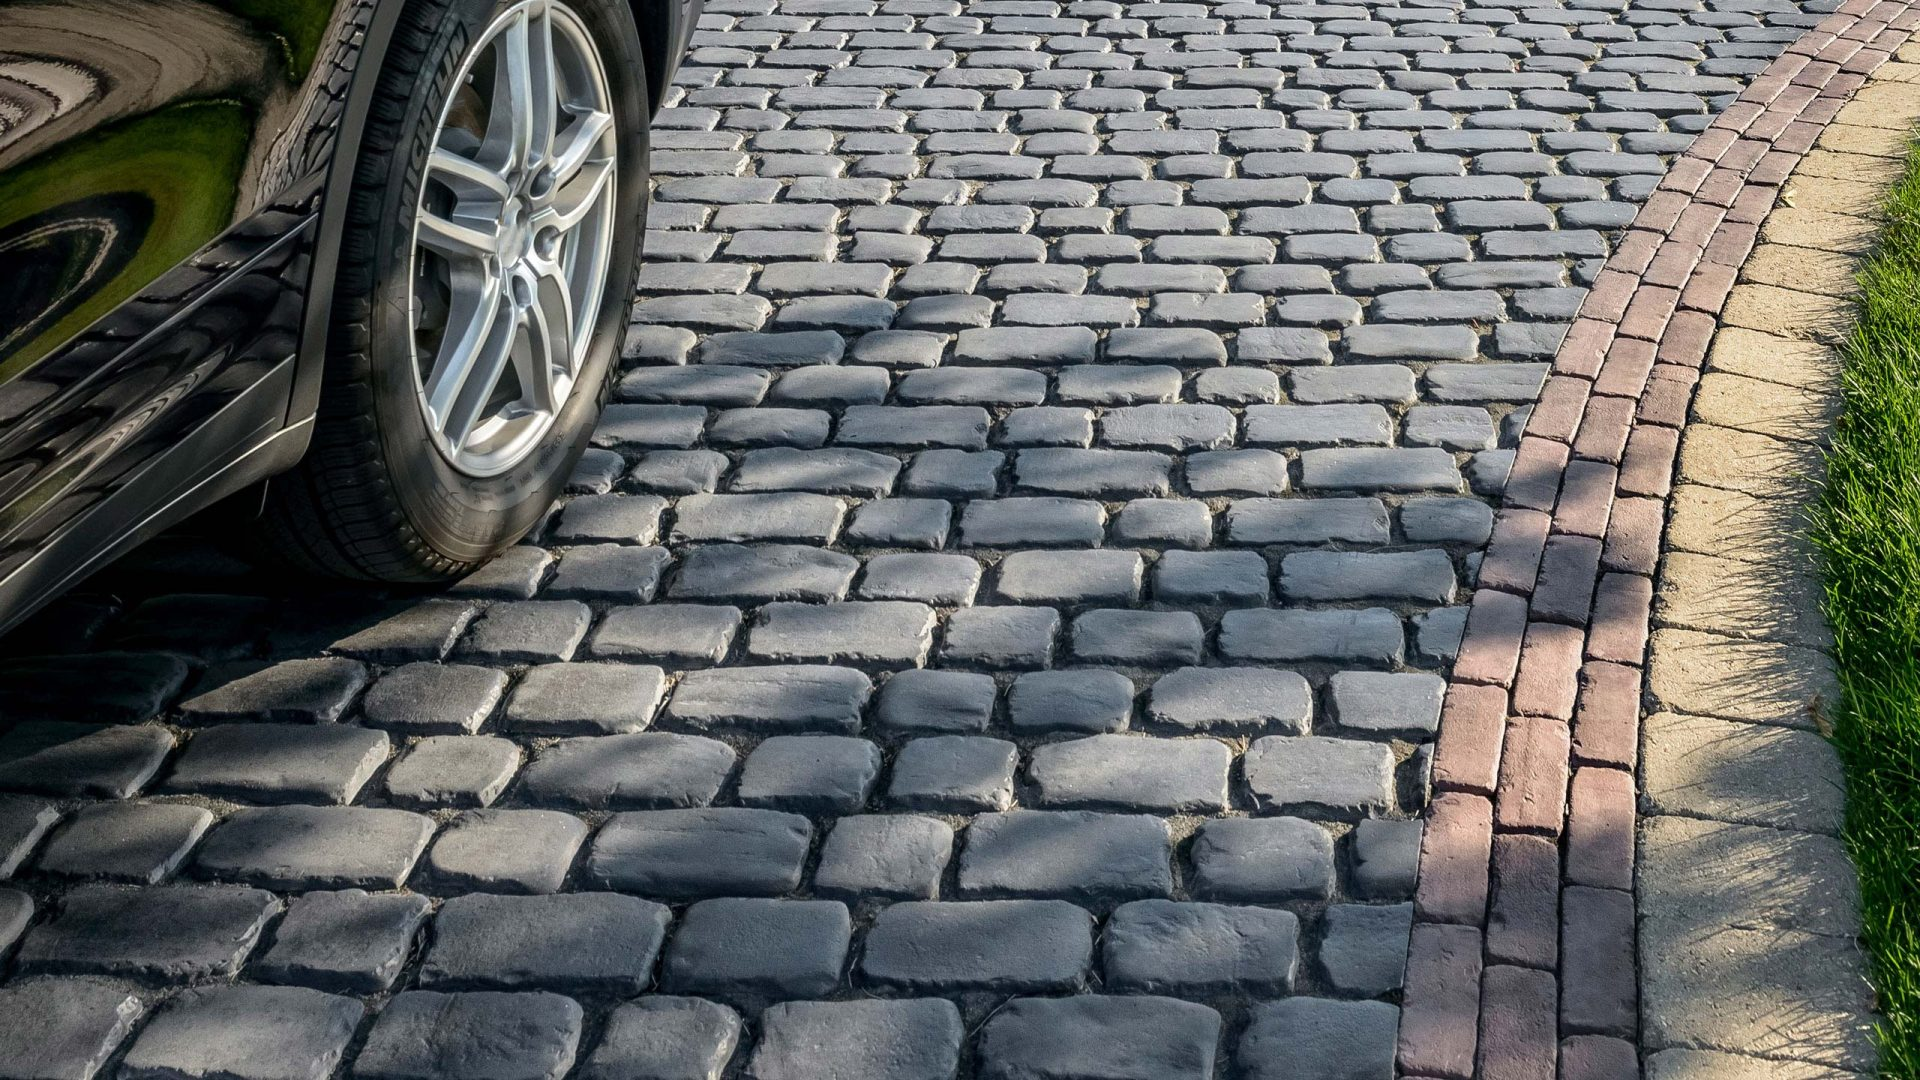 How Much Does Cobblestone Paver Installation Cost?